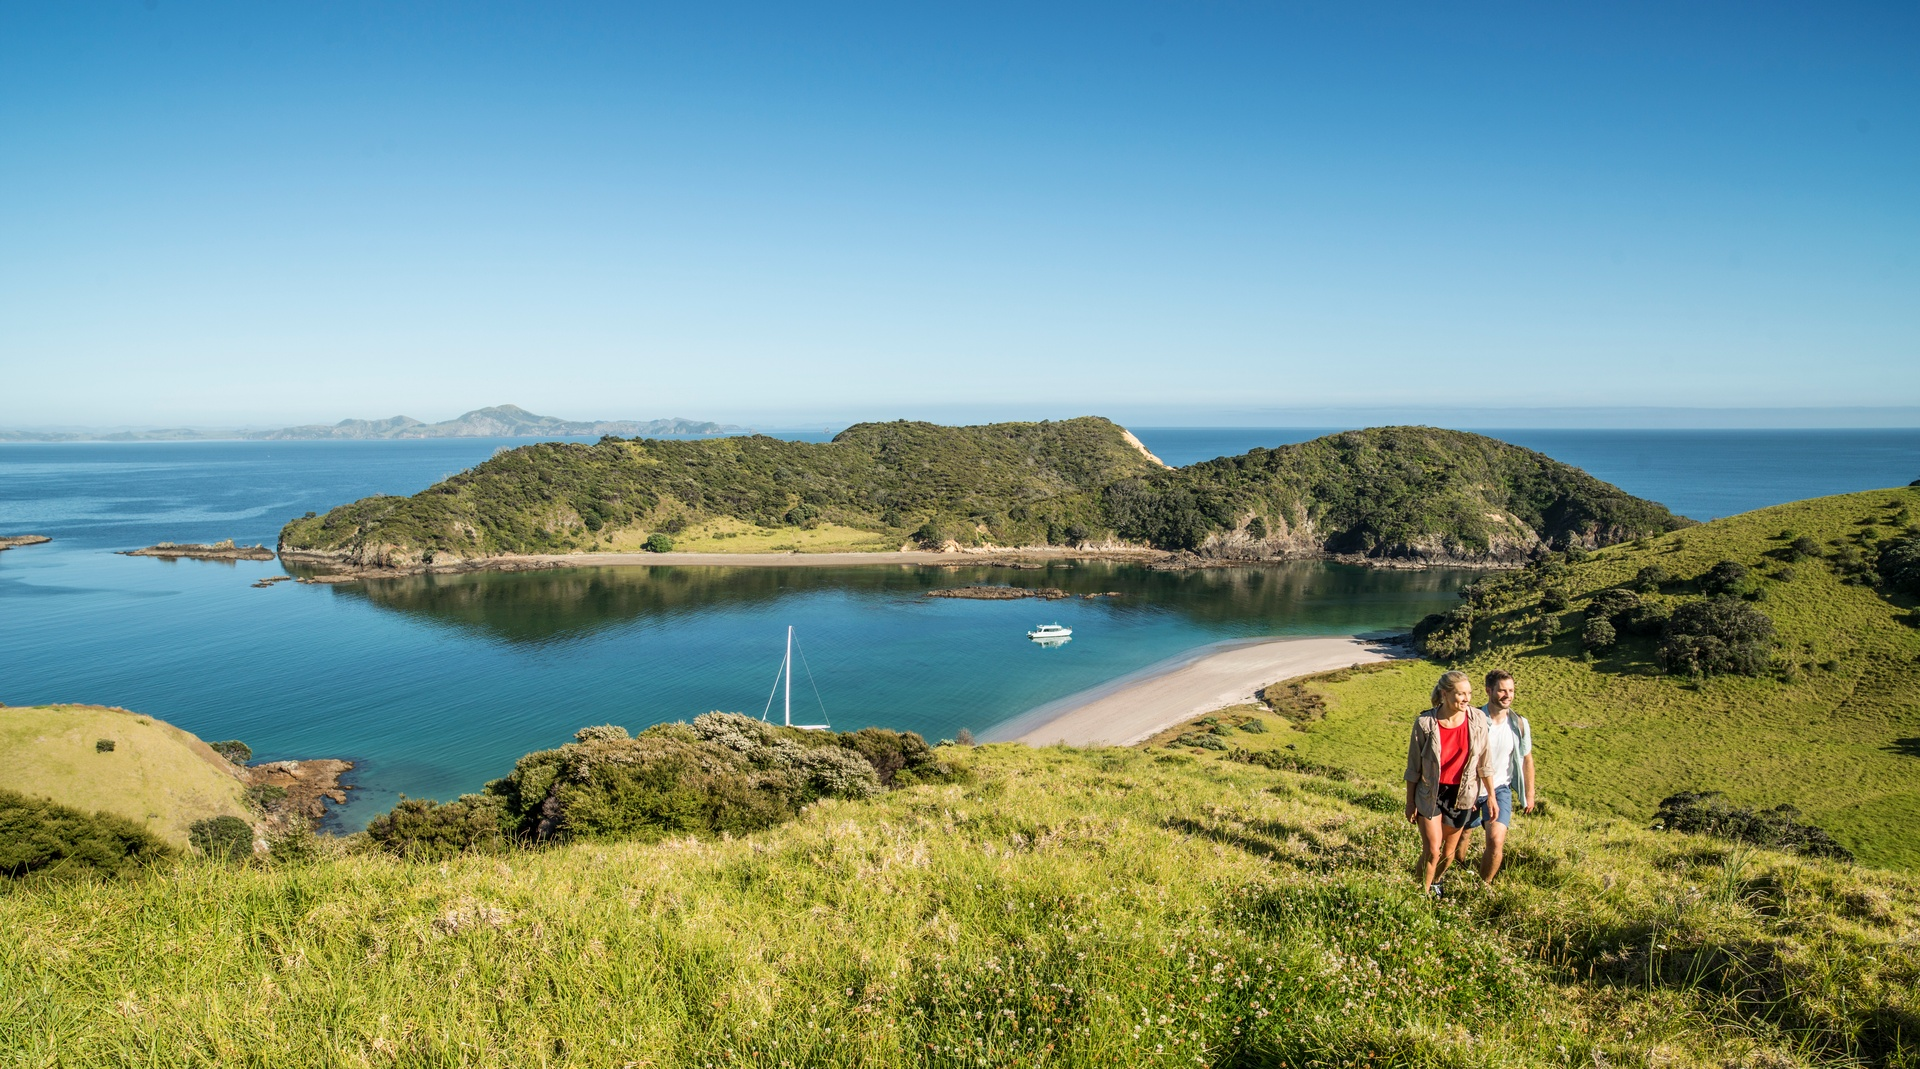 Bay of Islands - Island